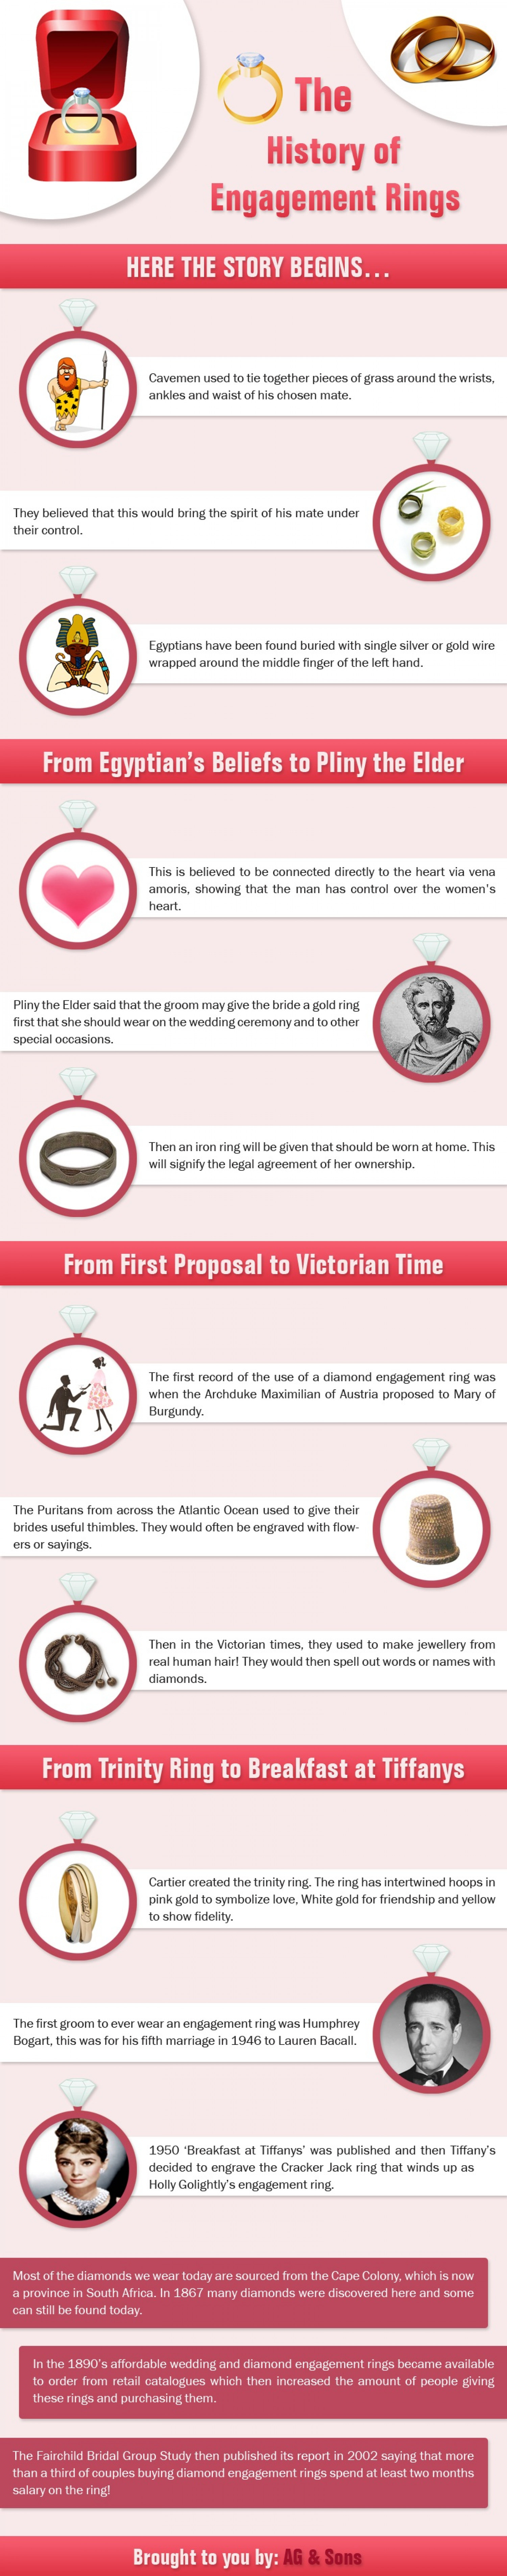 The Amazing History of Engagement Rings Infographic